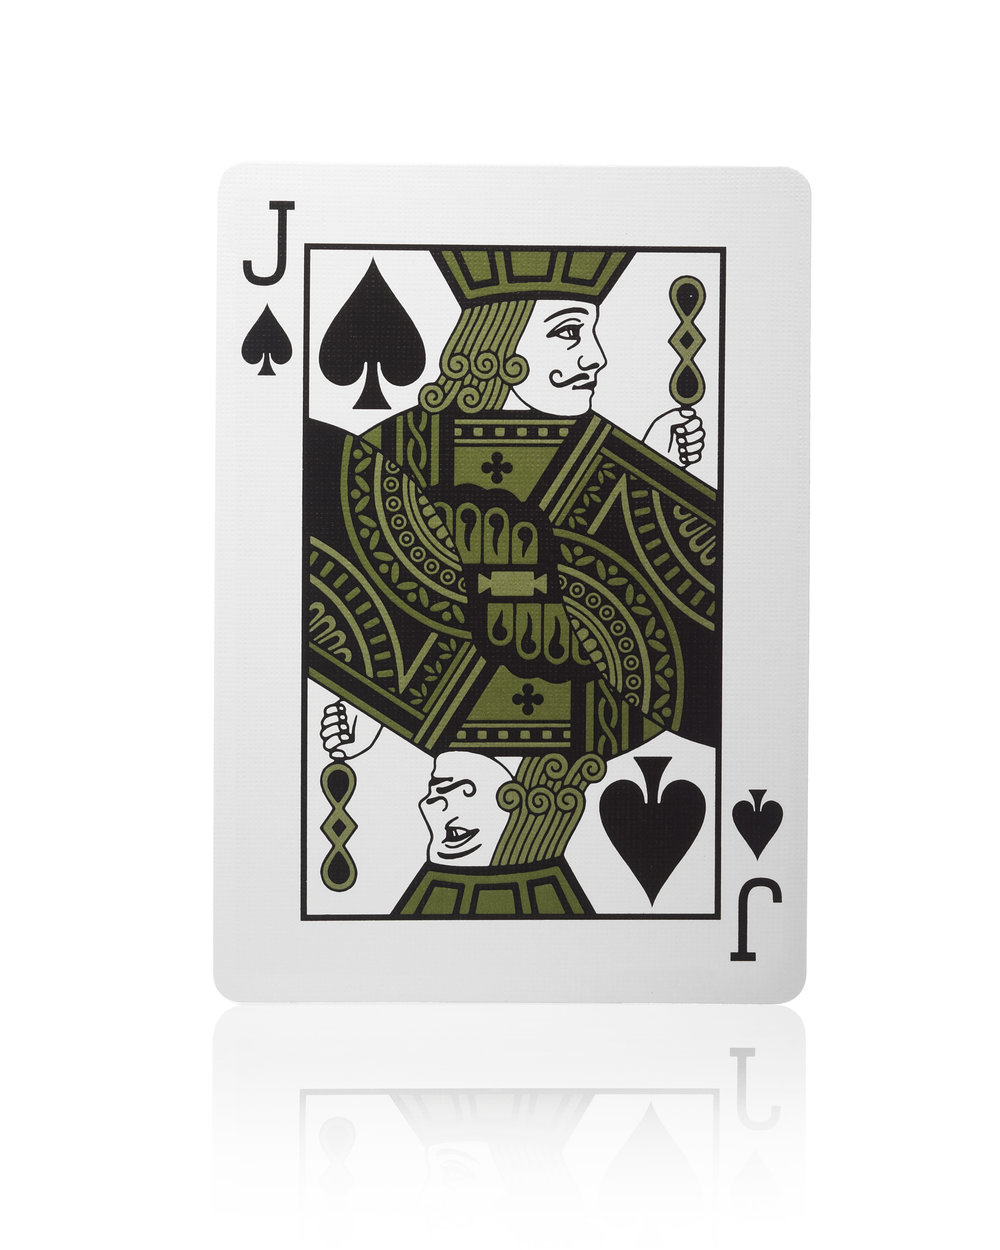 110330-PlayingCards-PlayingCards-001 copy.jpg